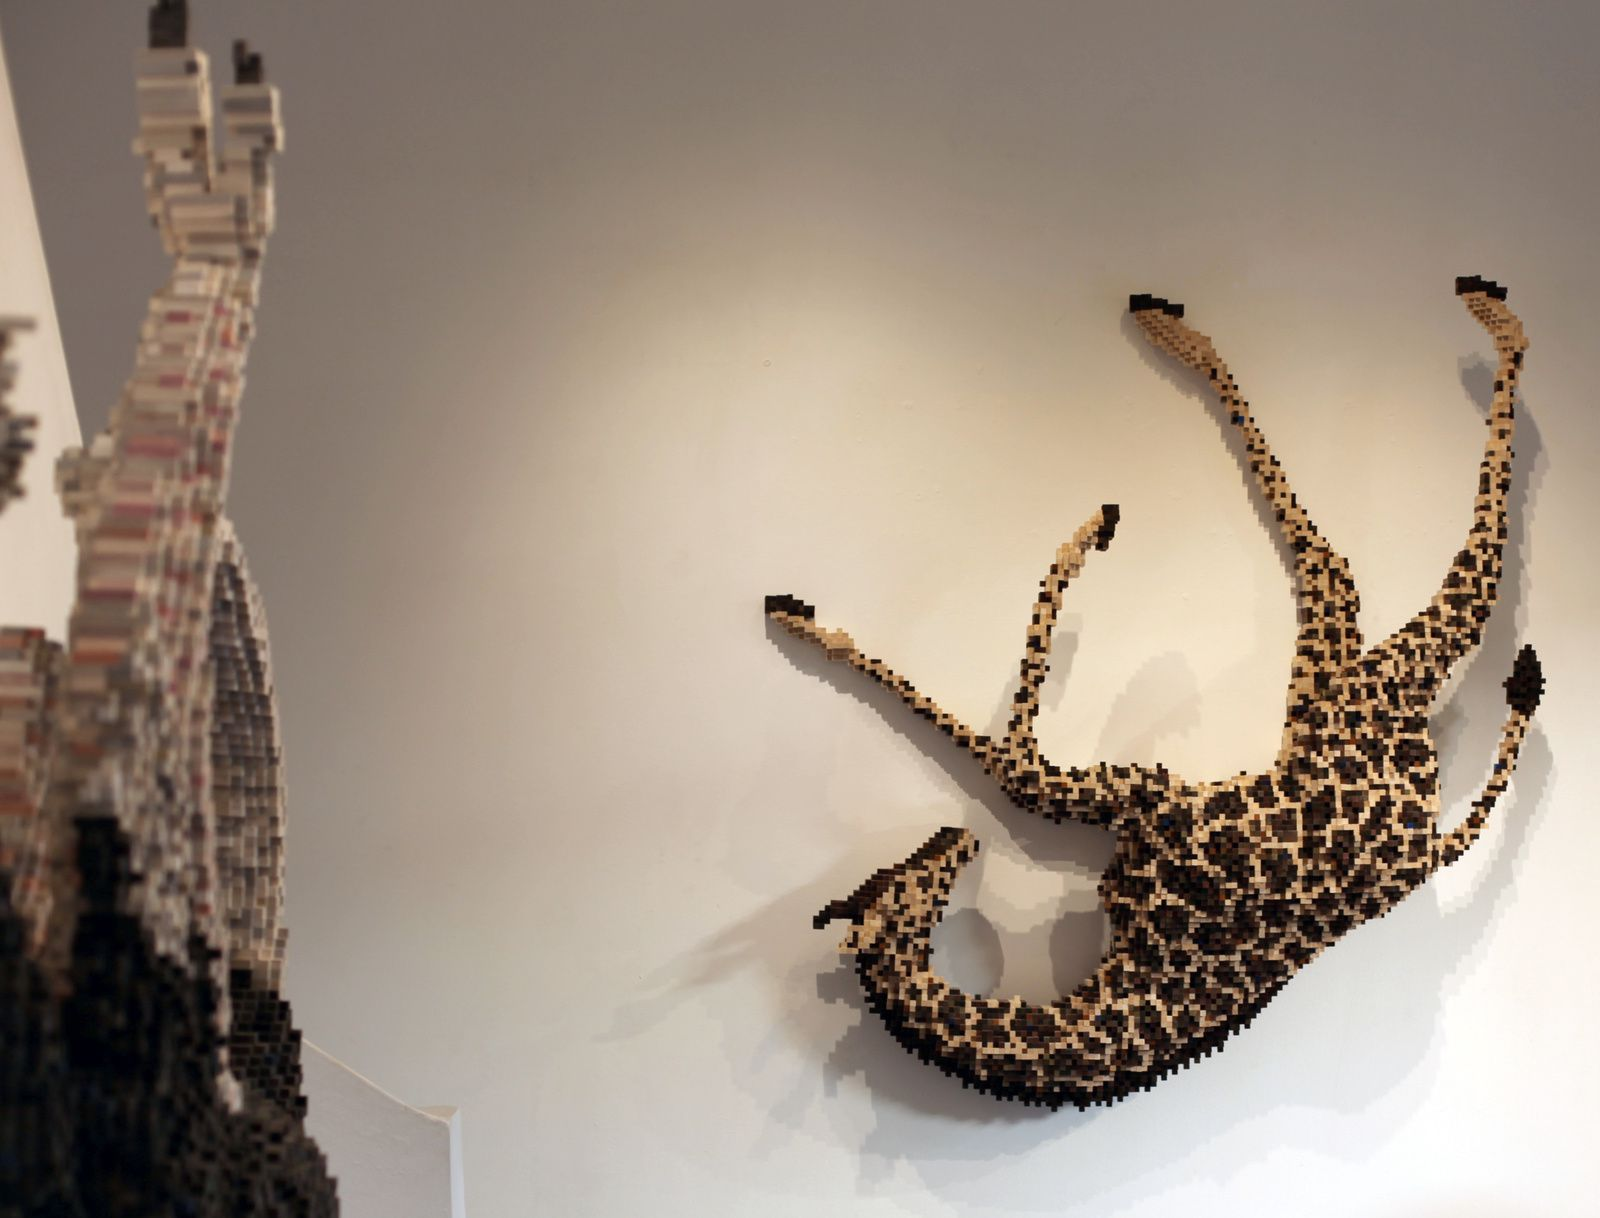 """Falling Giraffe"", 2015 de Shawn Smith - Courtesy Galerie Mark Hachem © Photo Éric Simon"